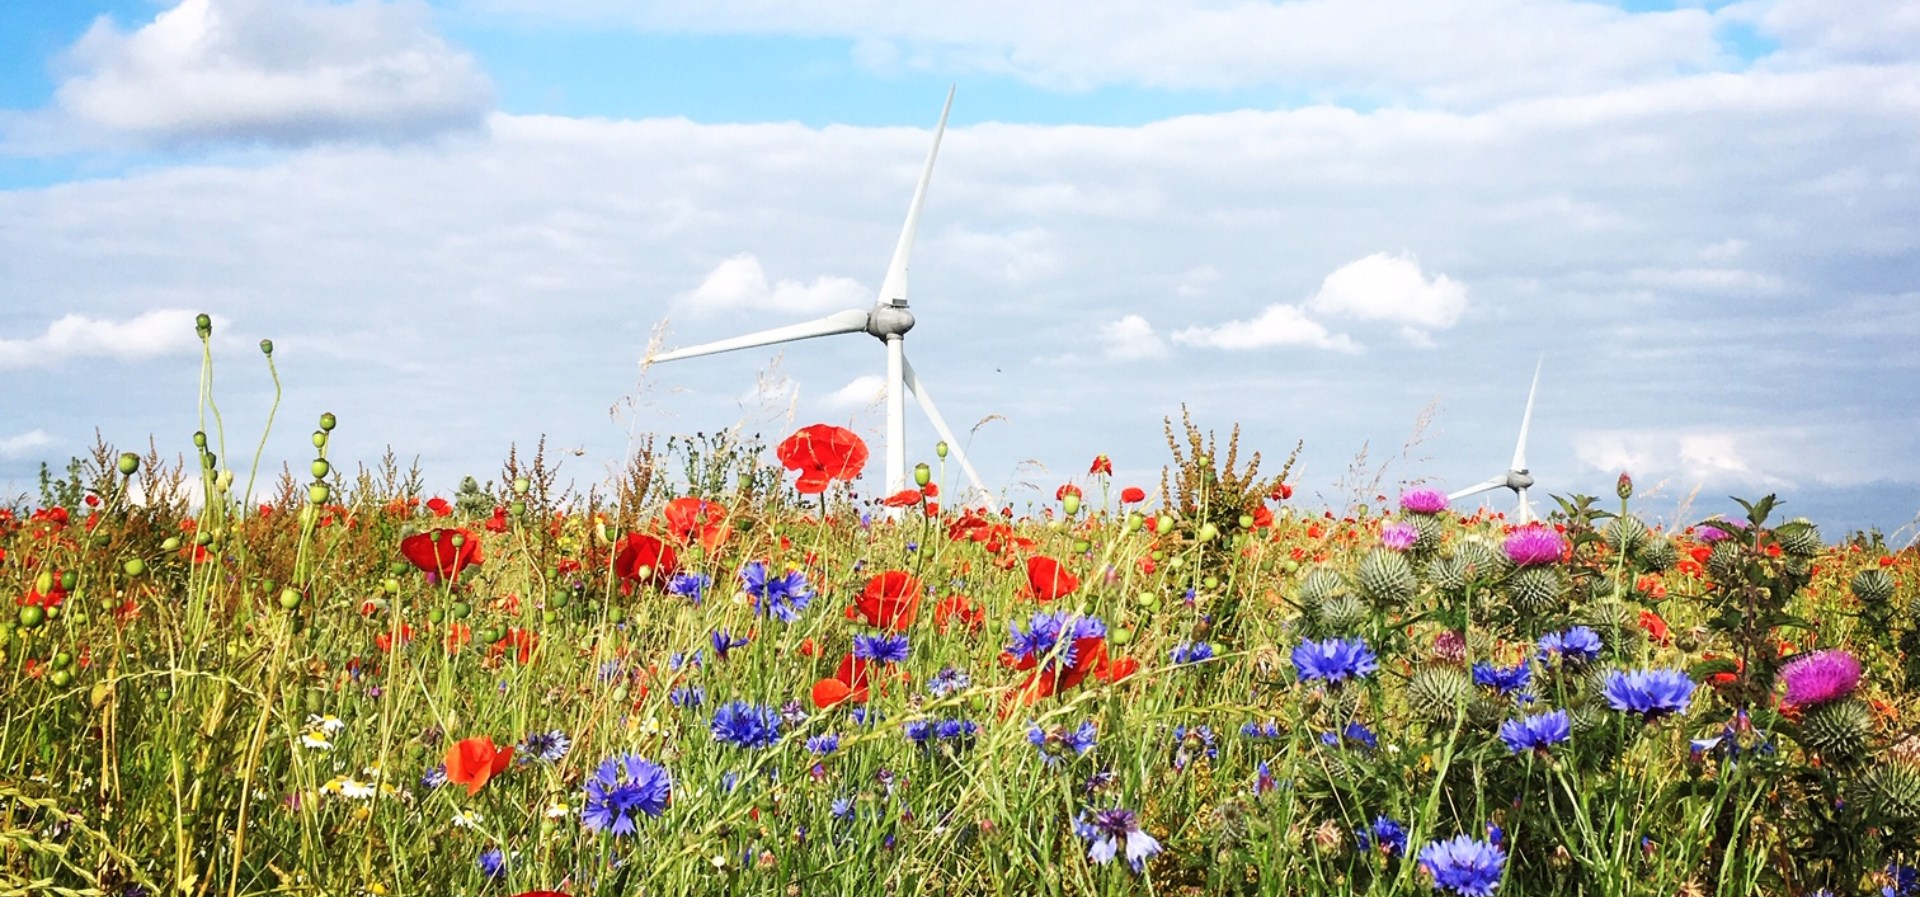 wind turbine in a flower meadow